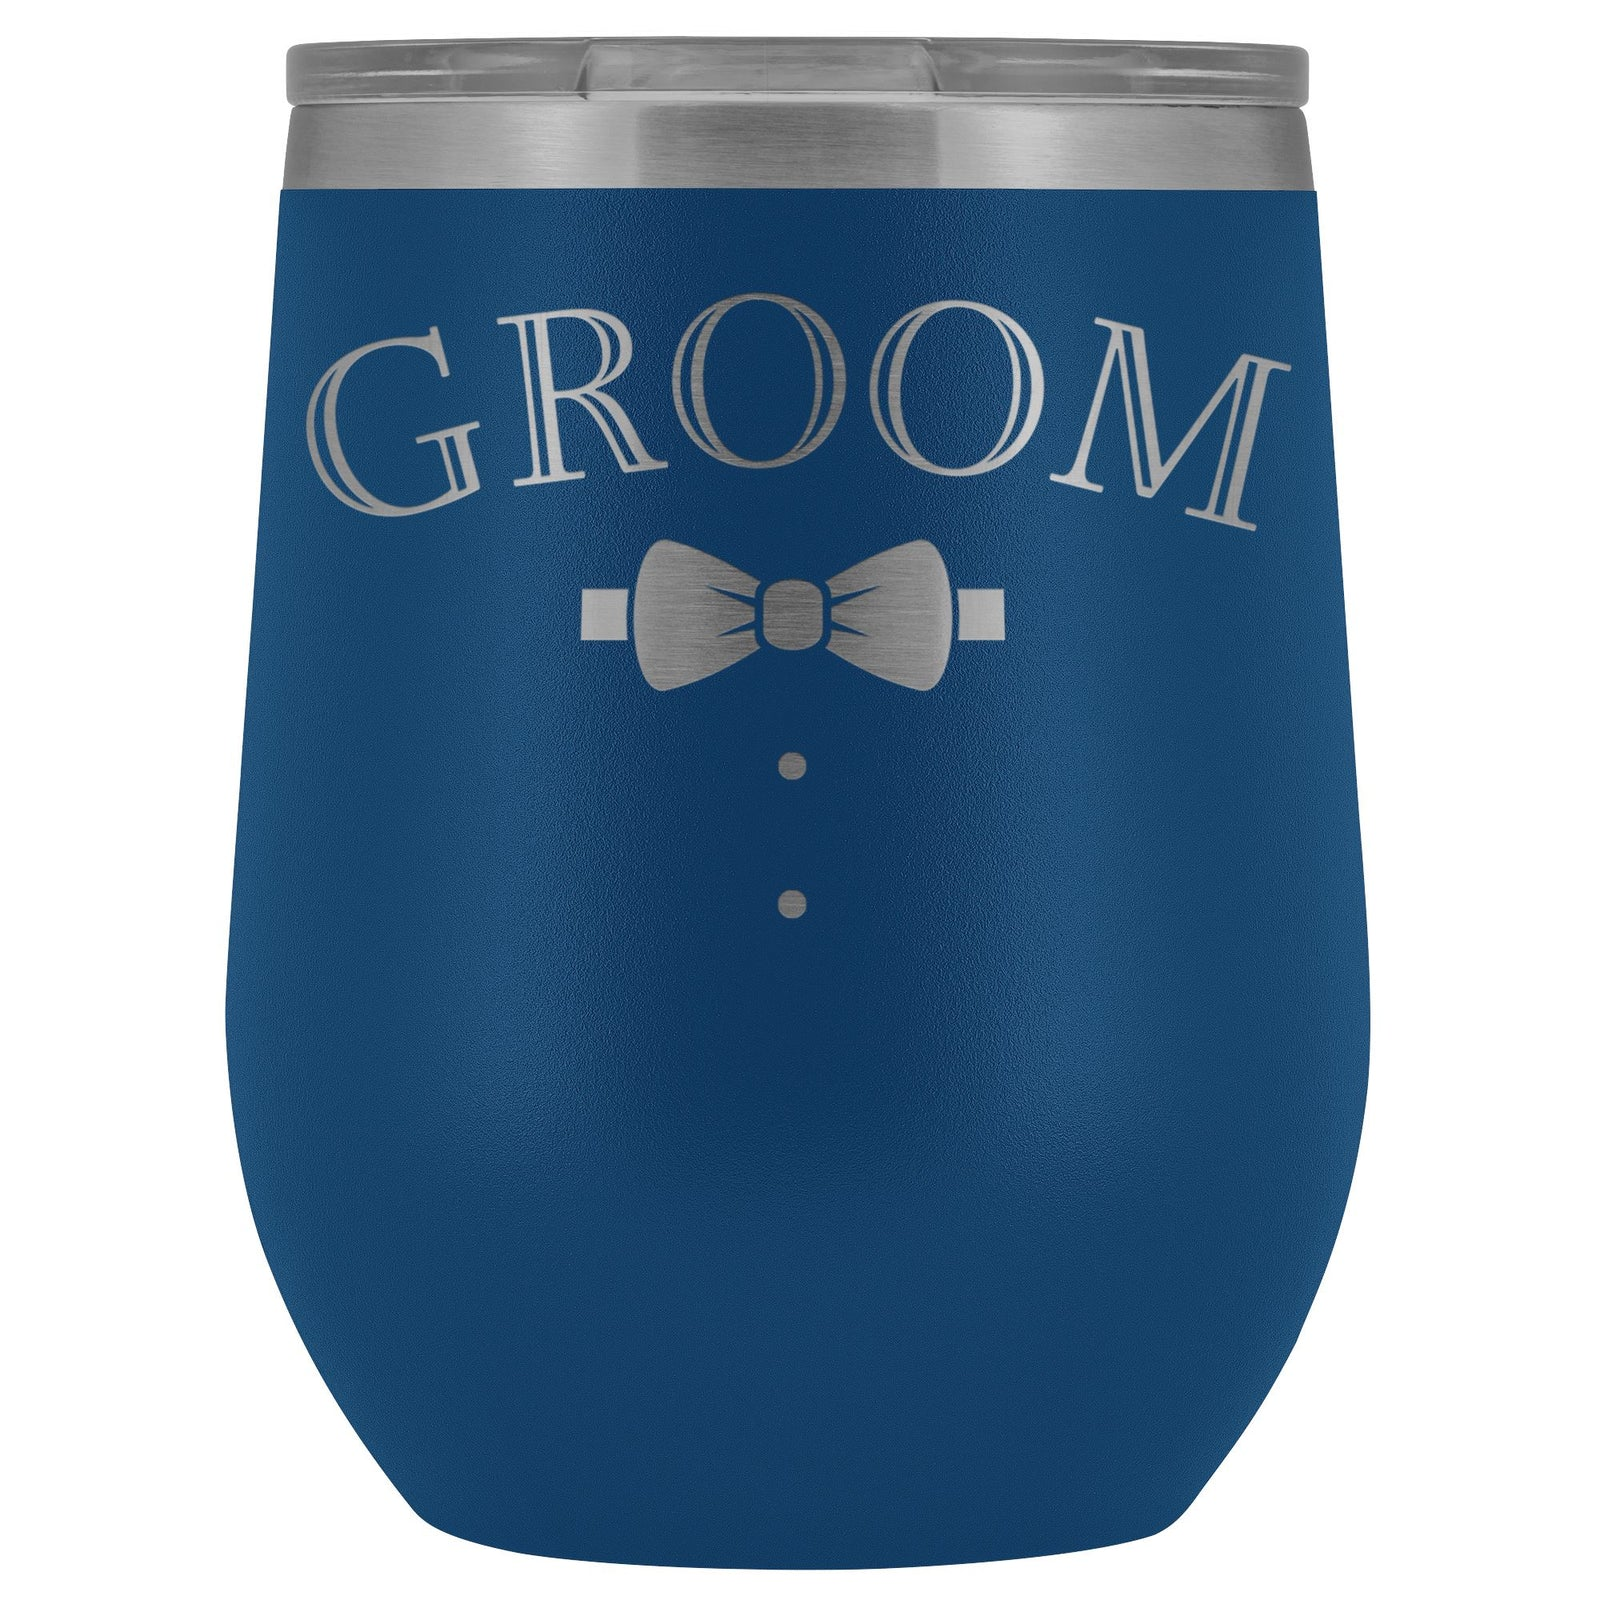 For The Groom Engraved 12oz. Wine Tumbler